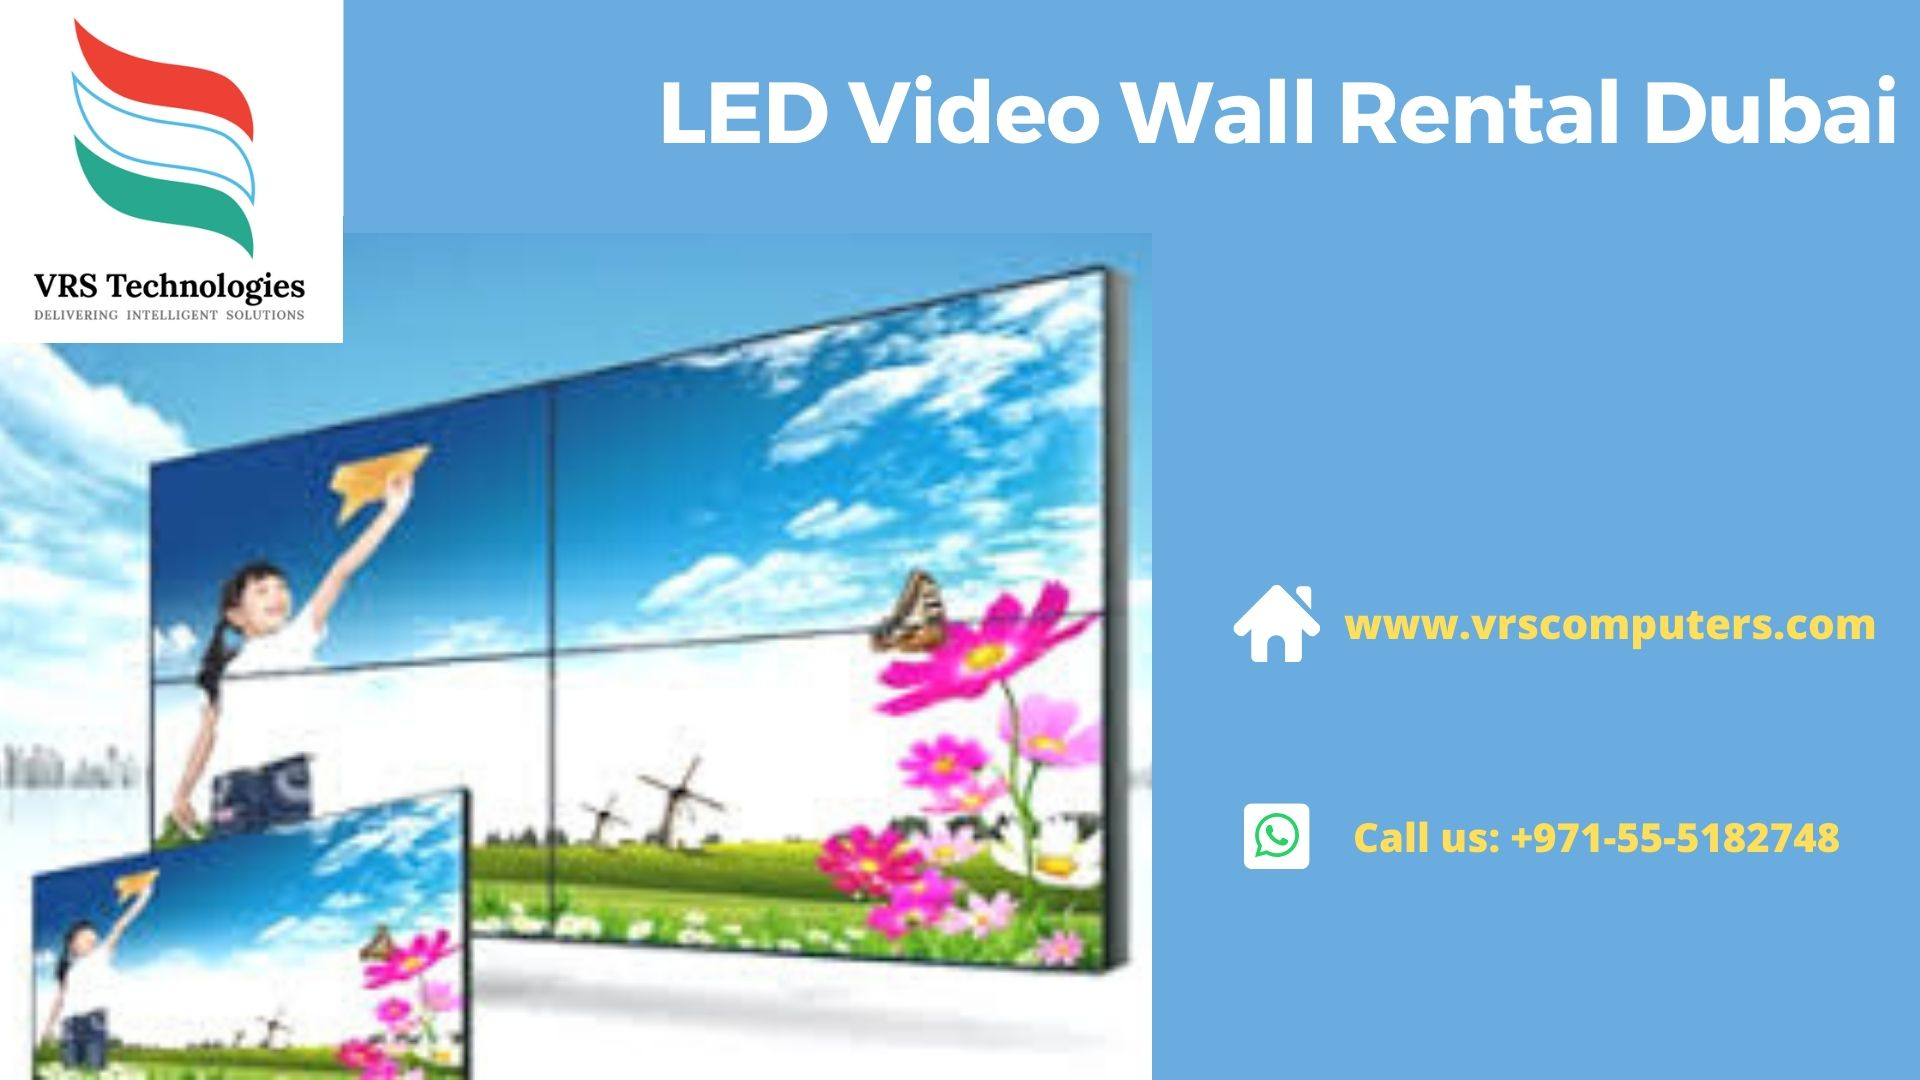 led-wall-rental-at-vrs-technologies-in-dubai